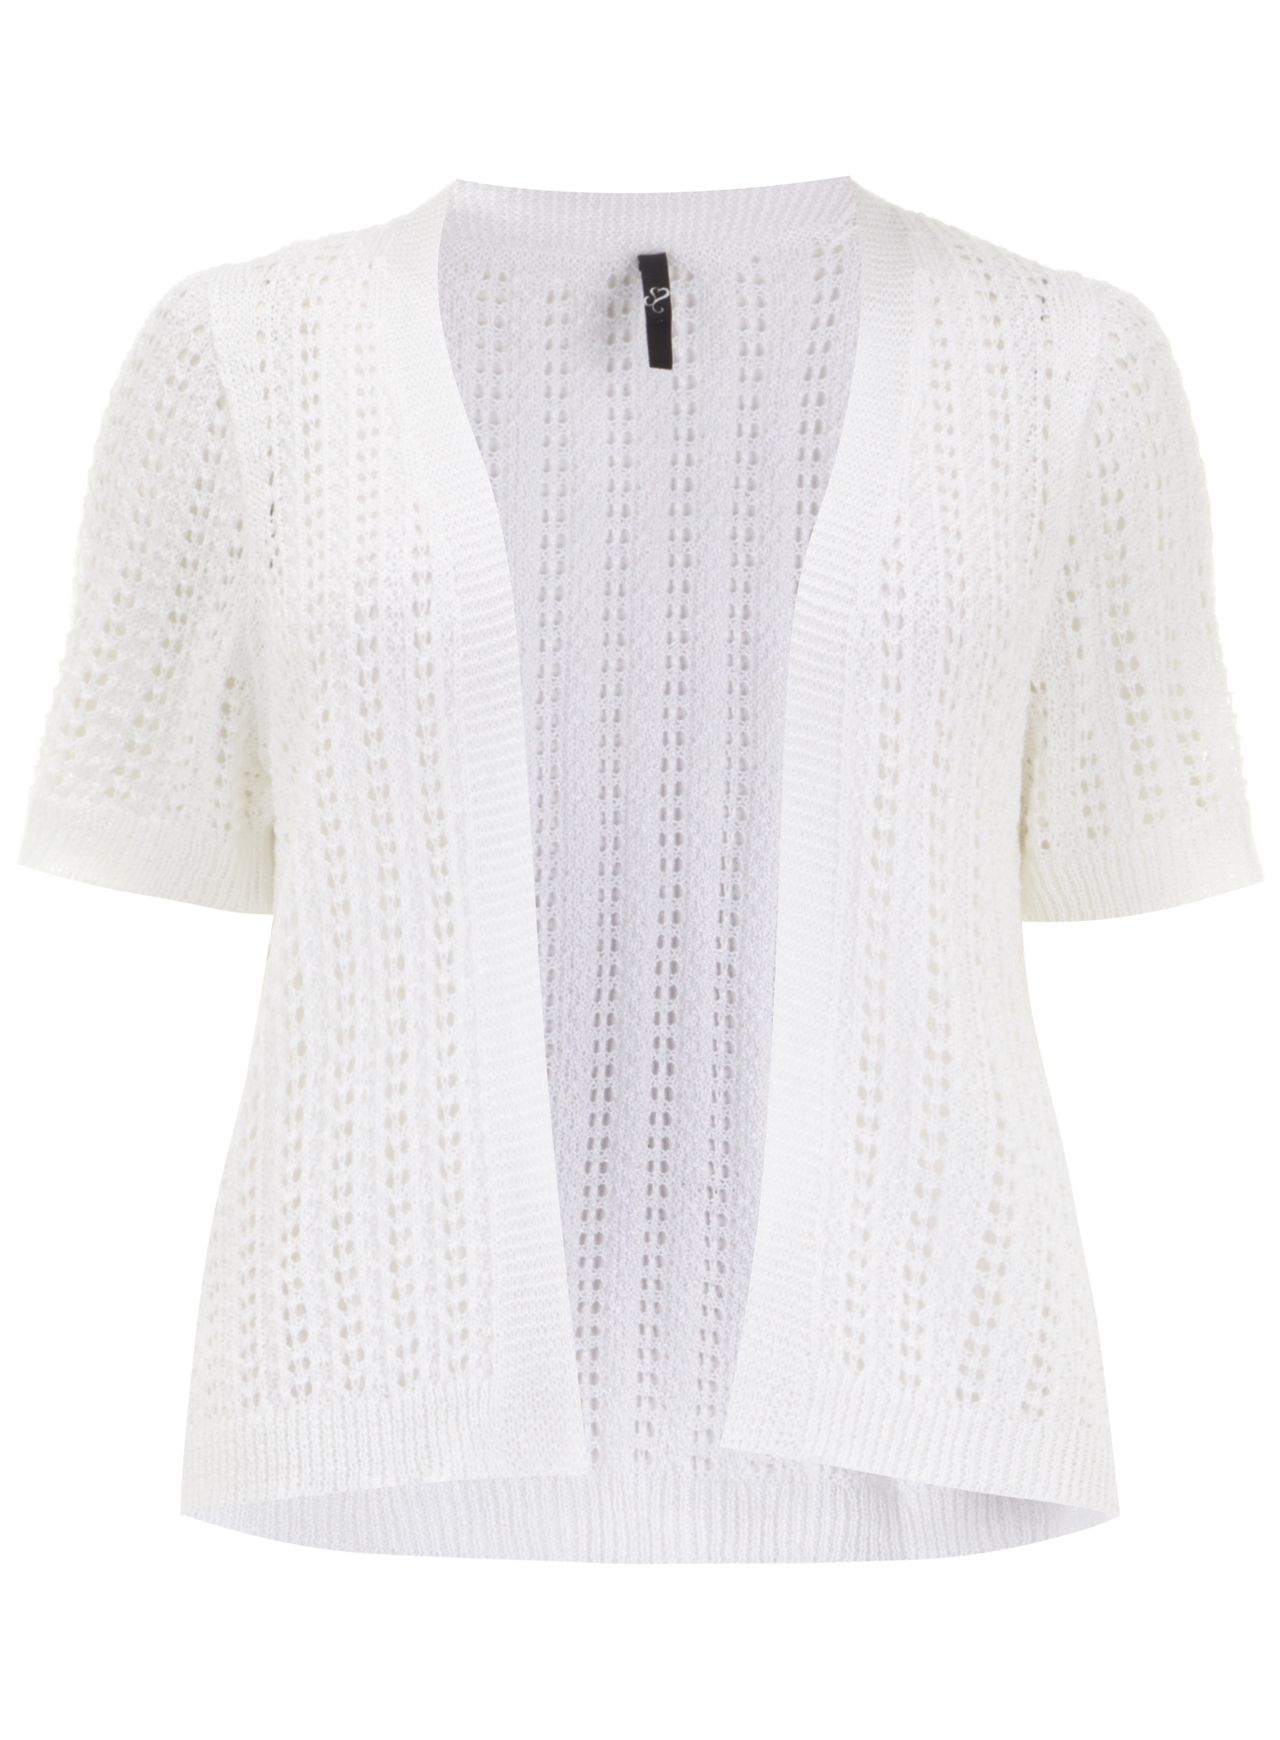 White Open Knit Textured Rib Shrug